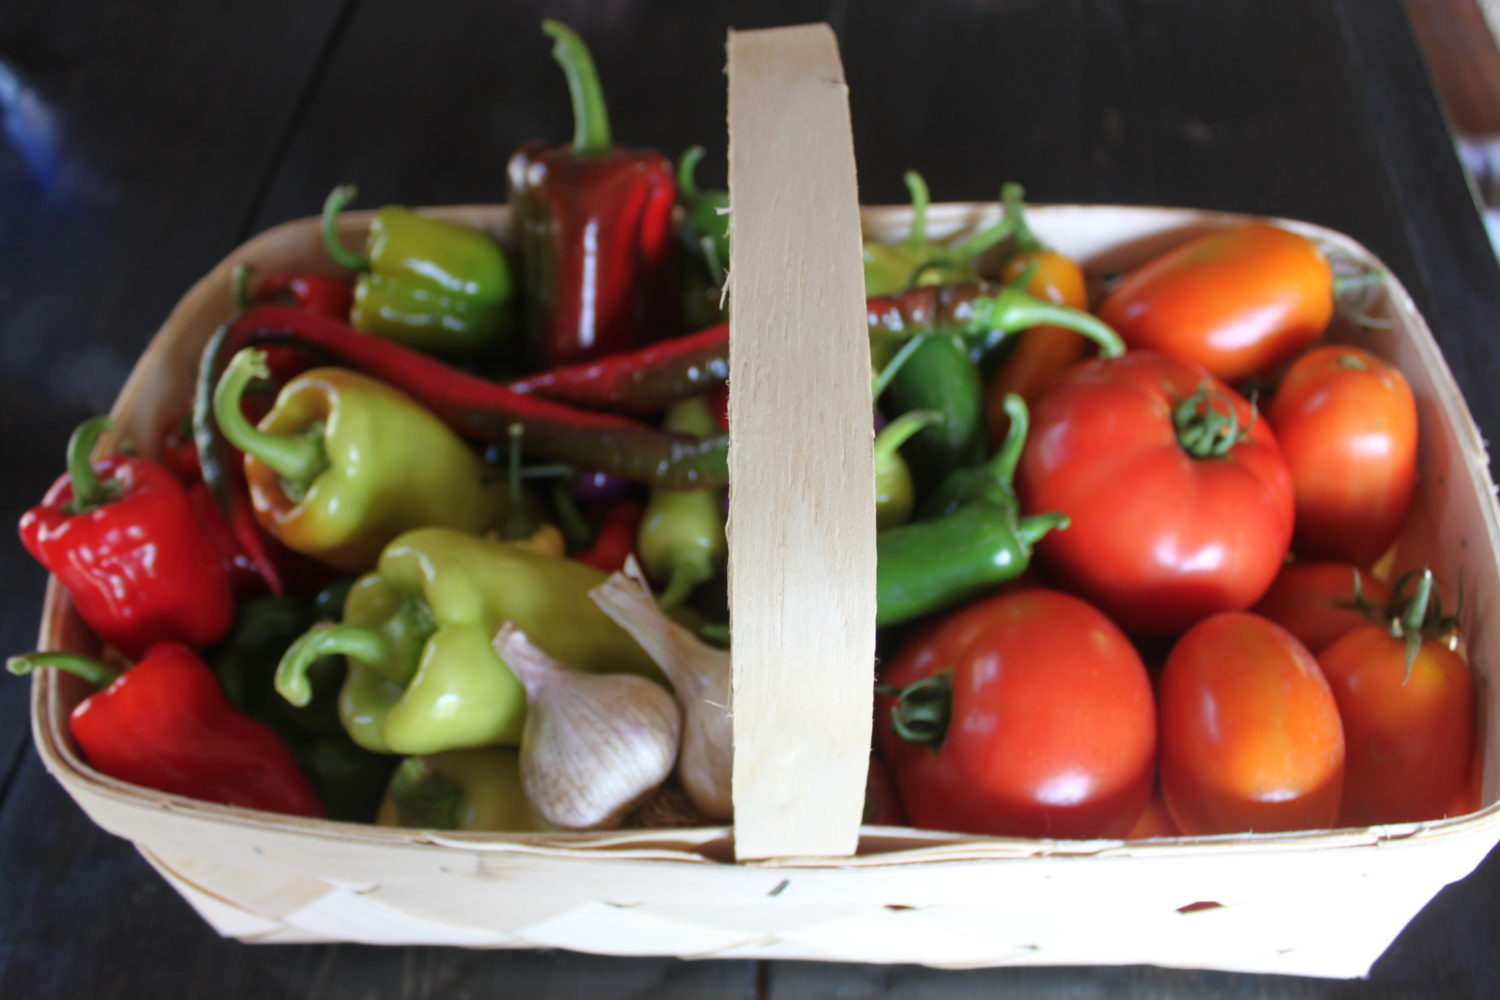 5 Great Reasons To Grow Your Own Food And Plant A Garden!